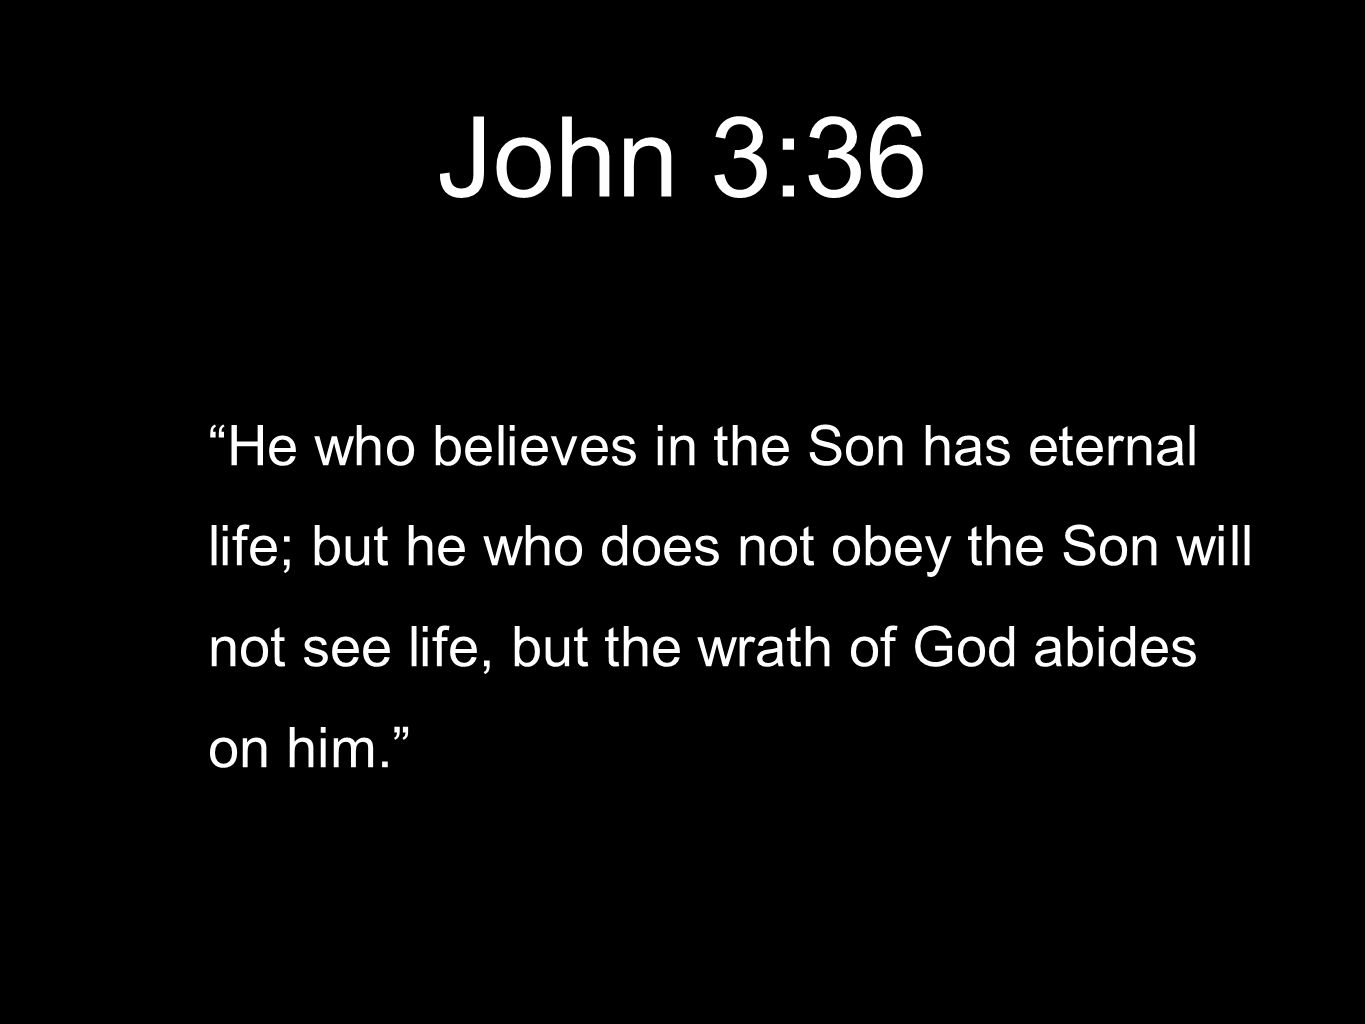 John 3:36 He who believes in the Son has eternal life; but he who does not obey the Son will not see life, but the wrath of God abides on him.